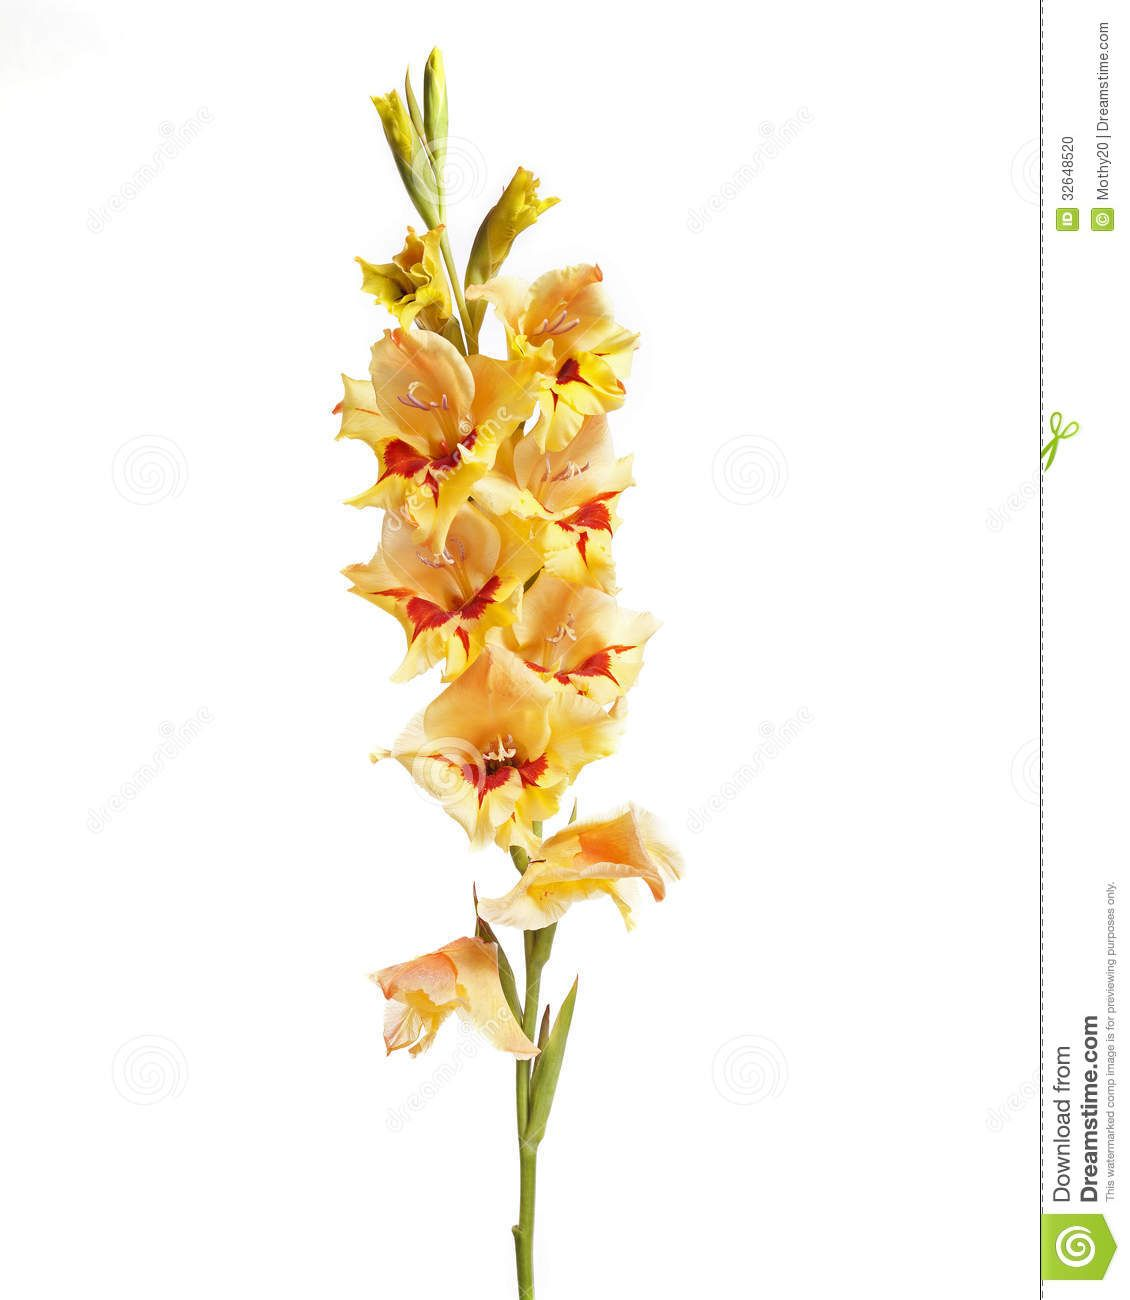 Single Gladiolus Gladiolus Flower Wallpaper Rose Wallpaper